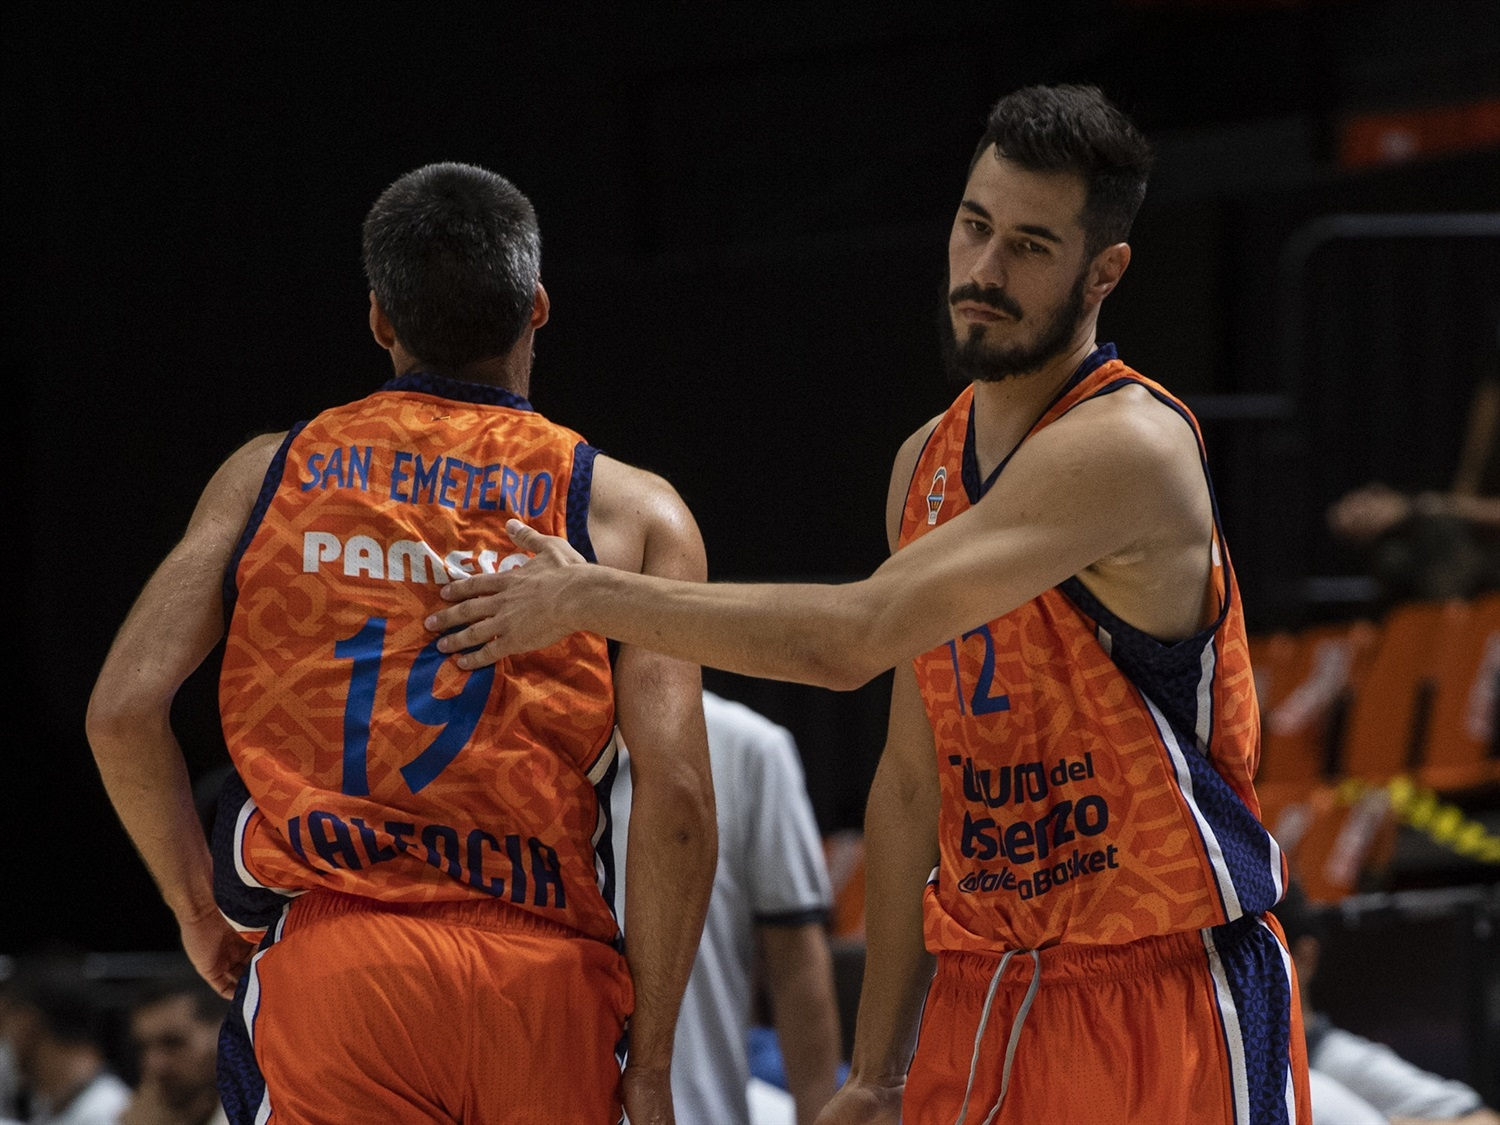 Nikola Kalinic - Valencia Basket - Preseason Tournament Valencia 2020 - EB20